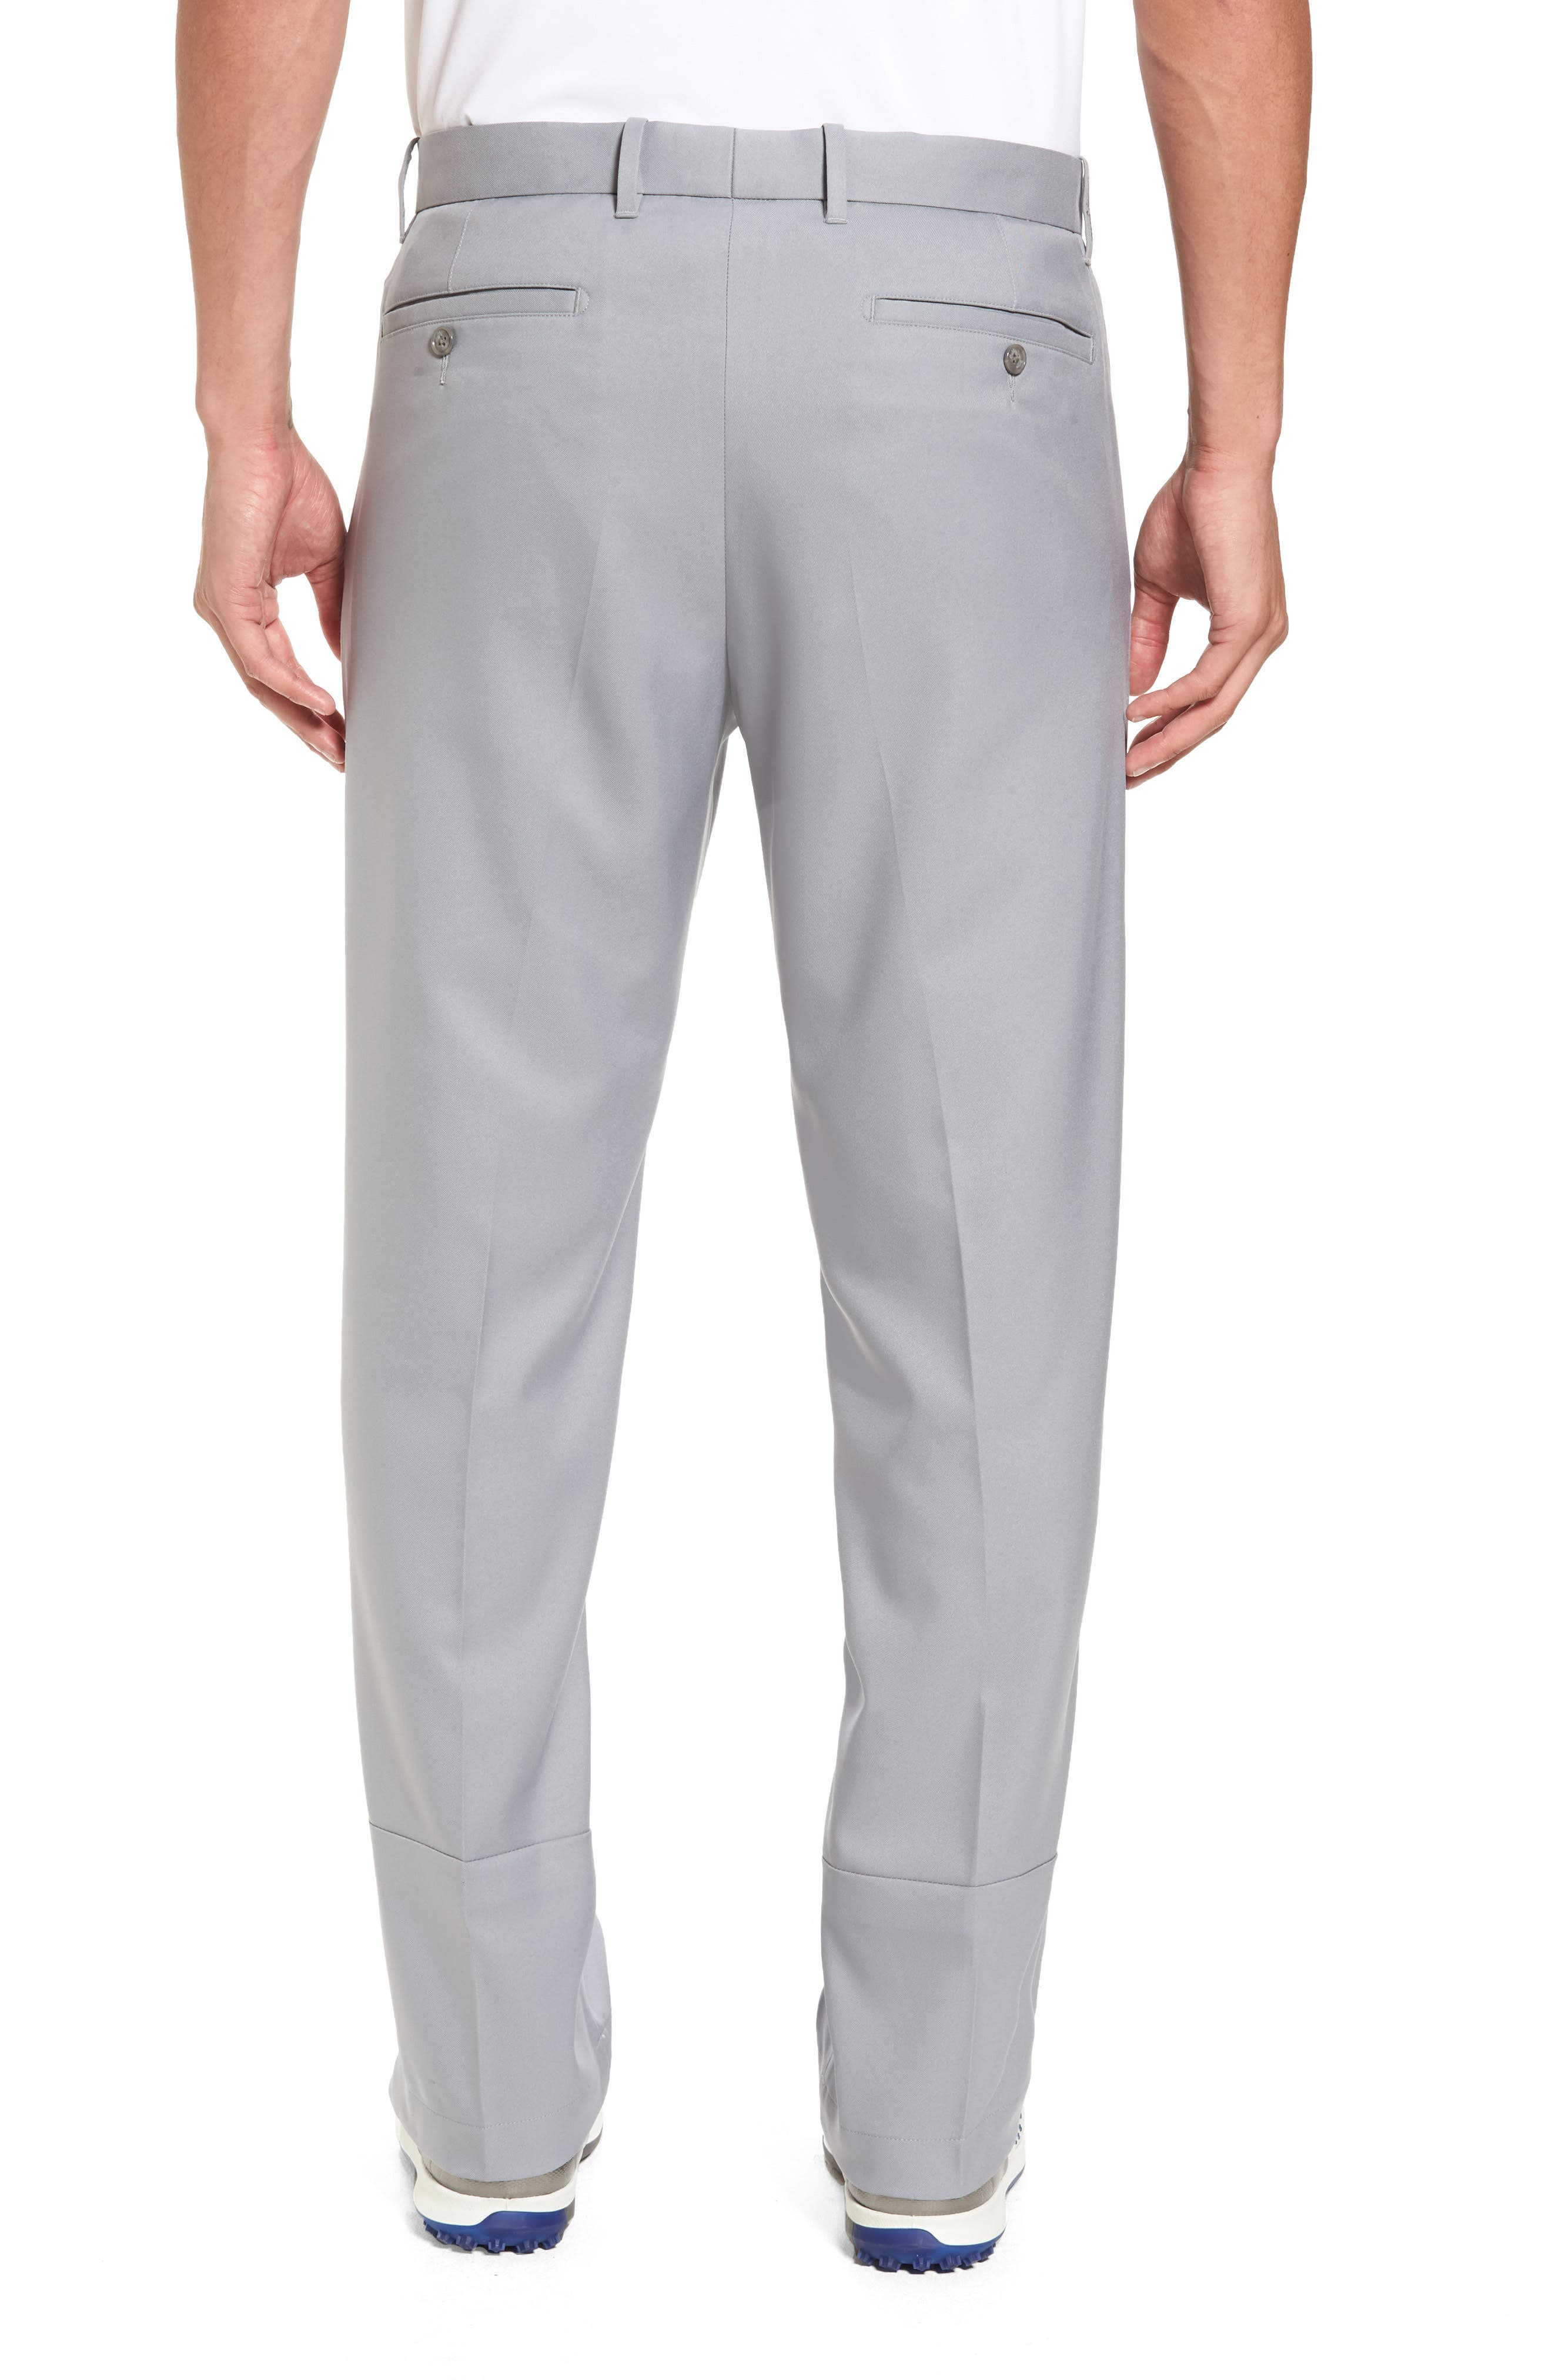 'Tech' Flat Front Wrinkle Free Golf Pants,                             Alternate thumbnail 2, color,                             052